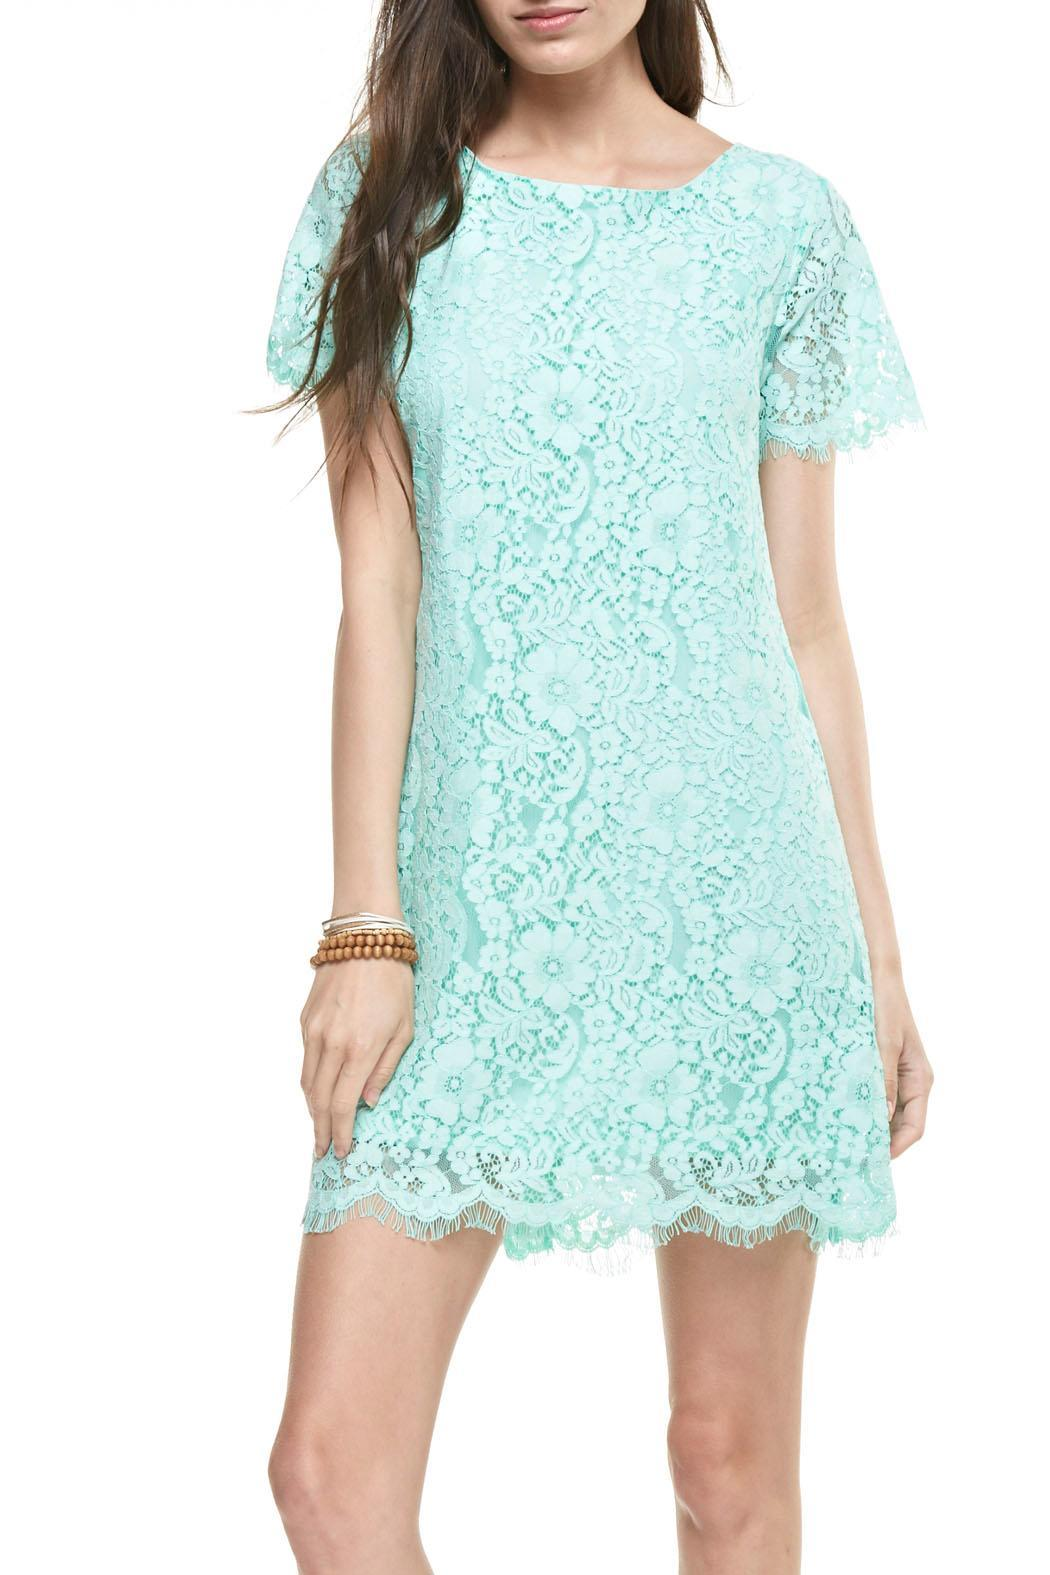 Lace shift dress in green